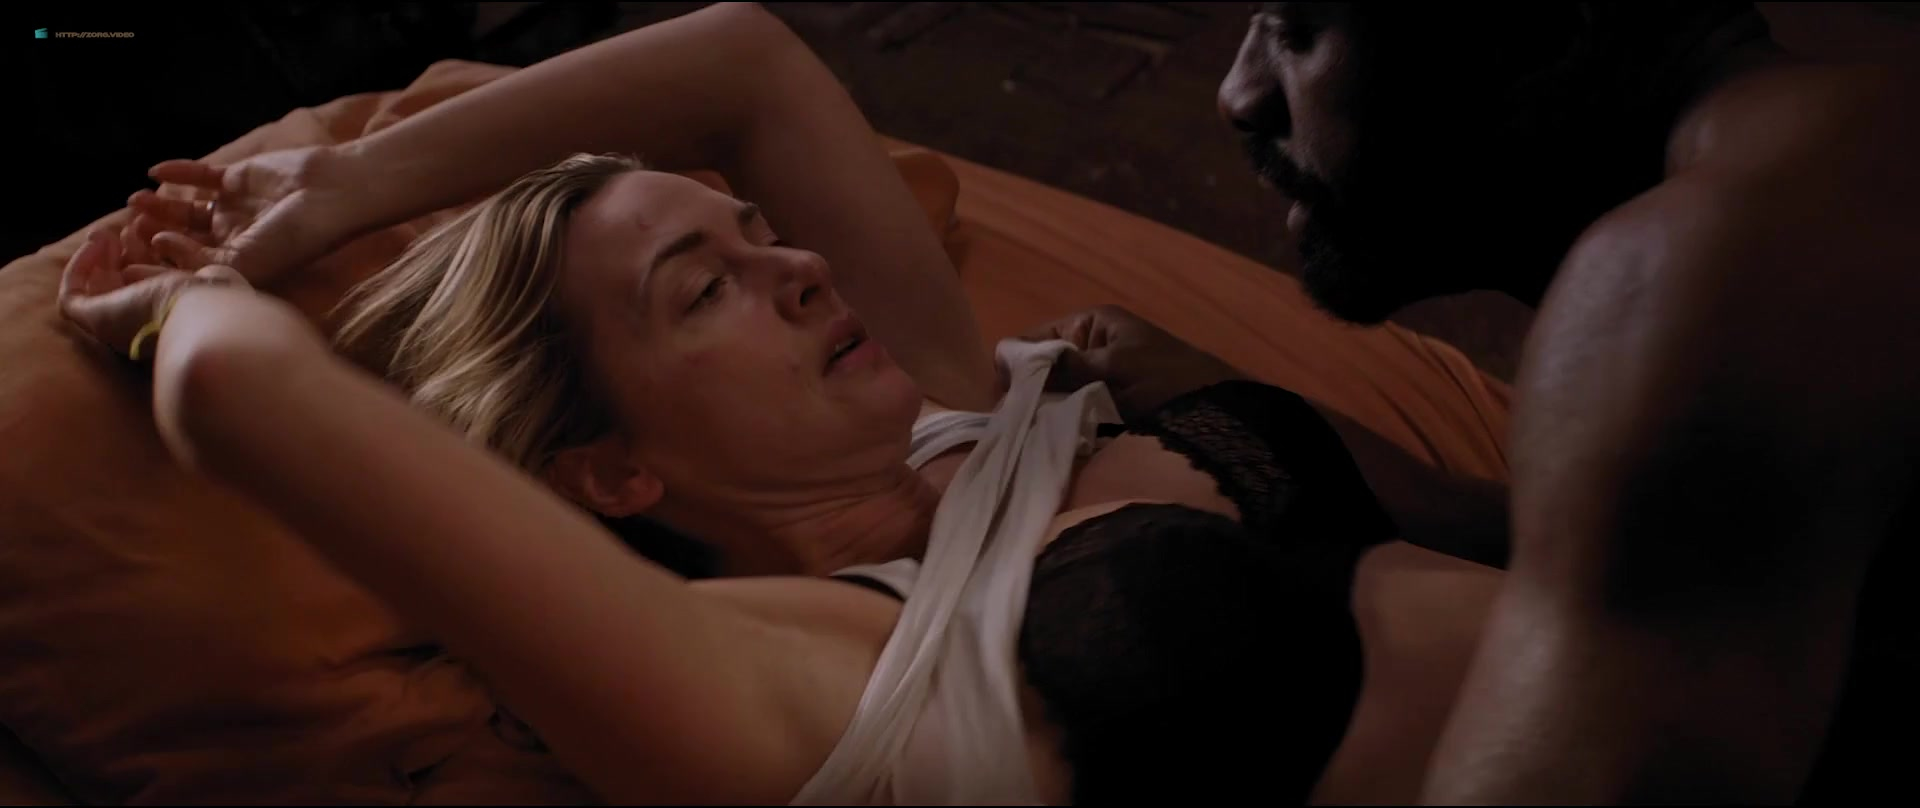 Kate winslet sex pic-6122